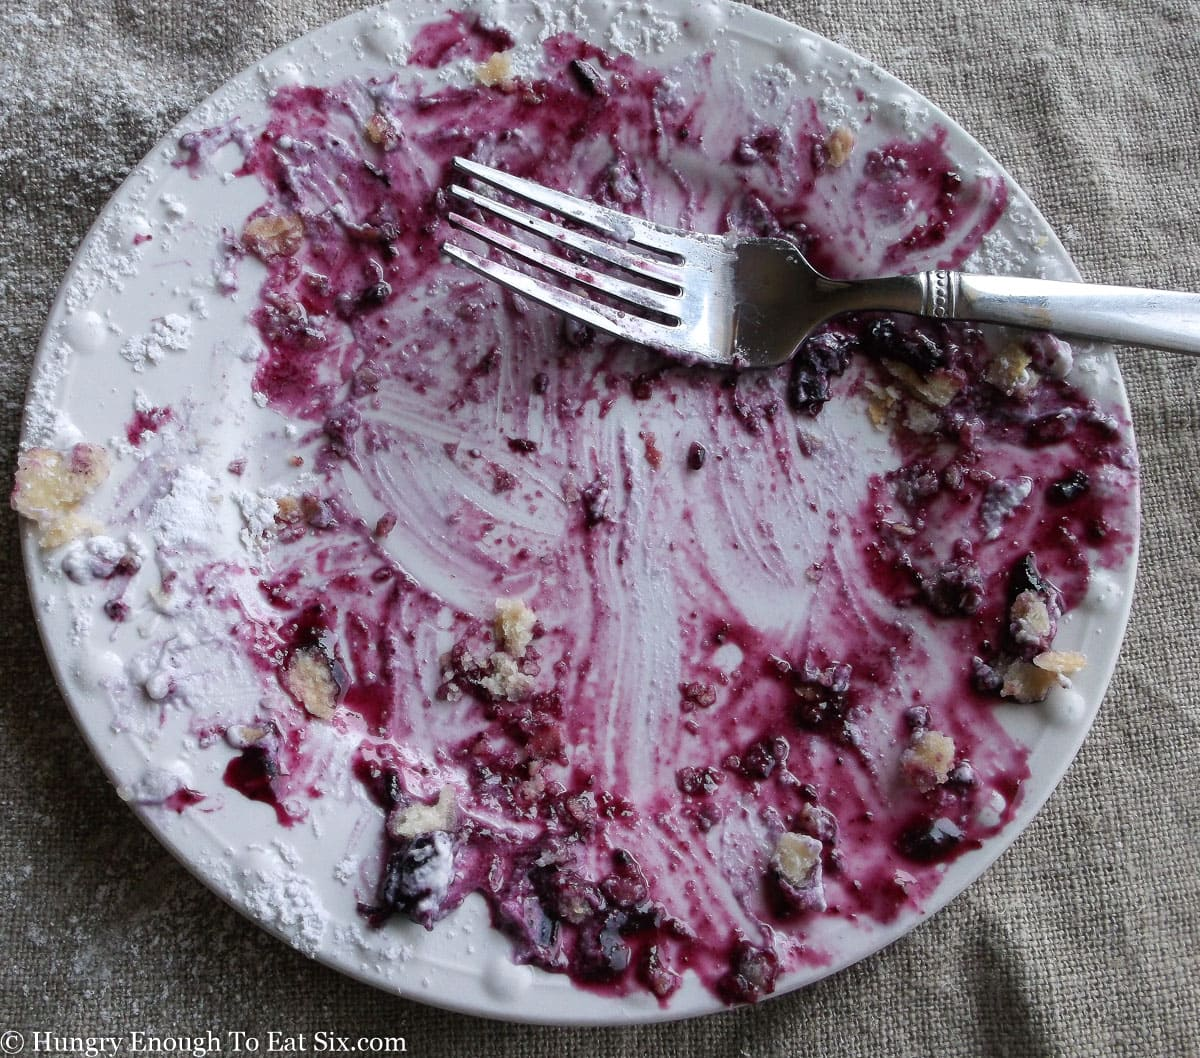 White plate with remains of blueberry sauce and pie crust crumbs, and a fork